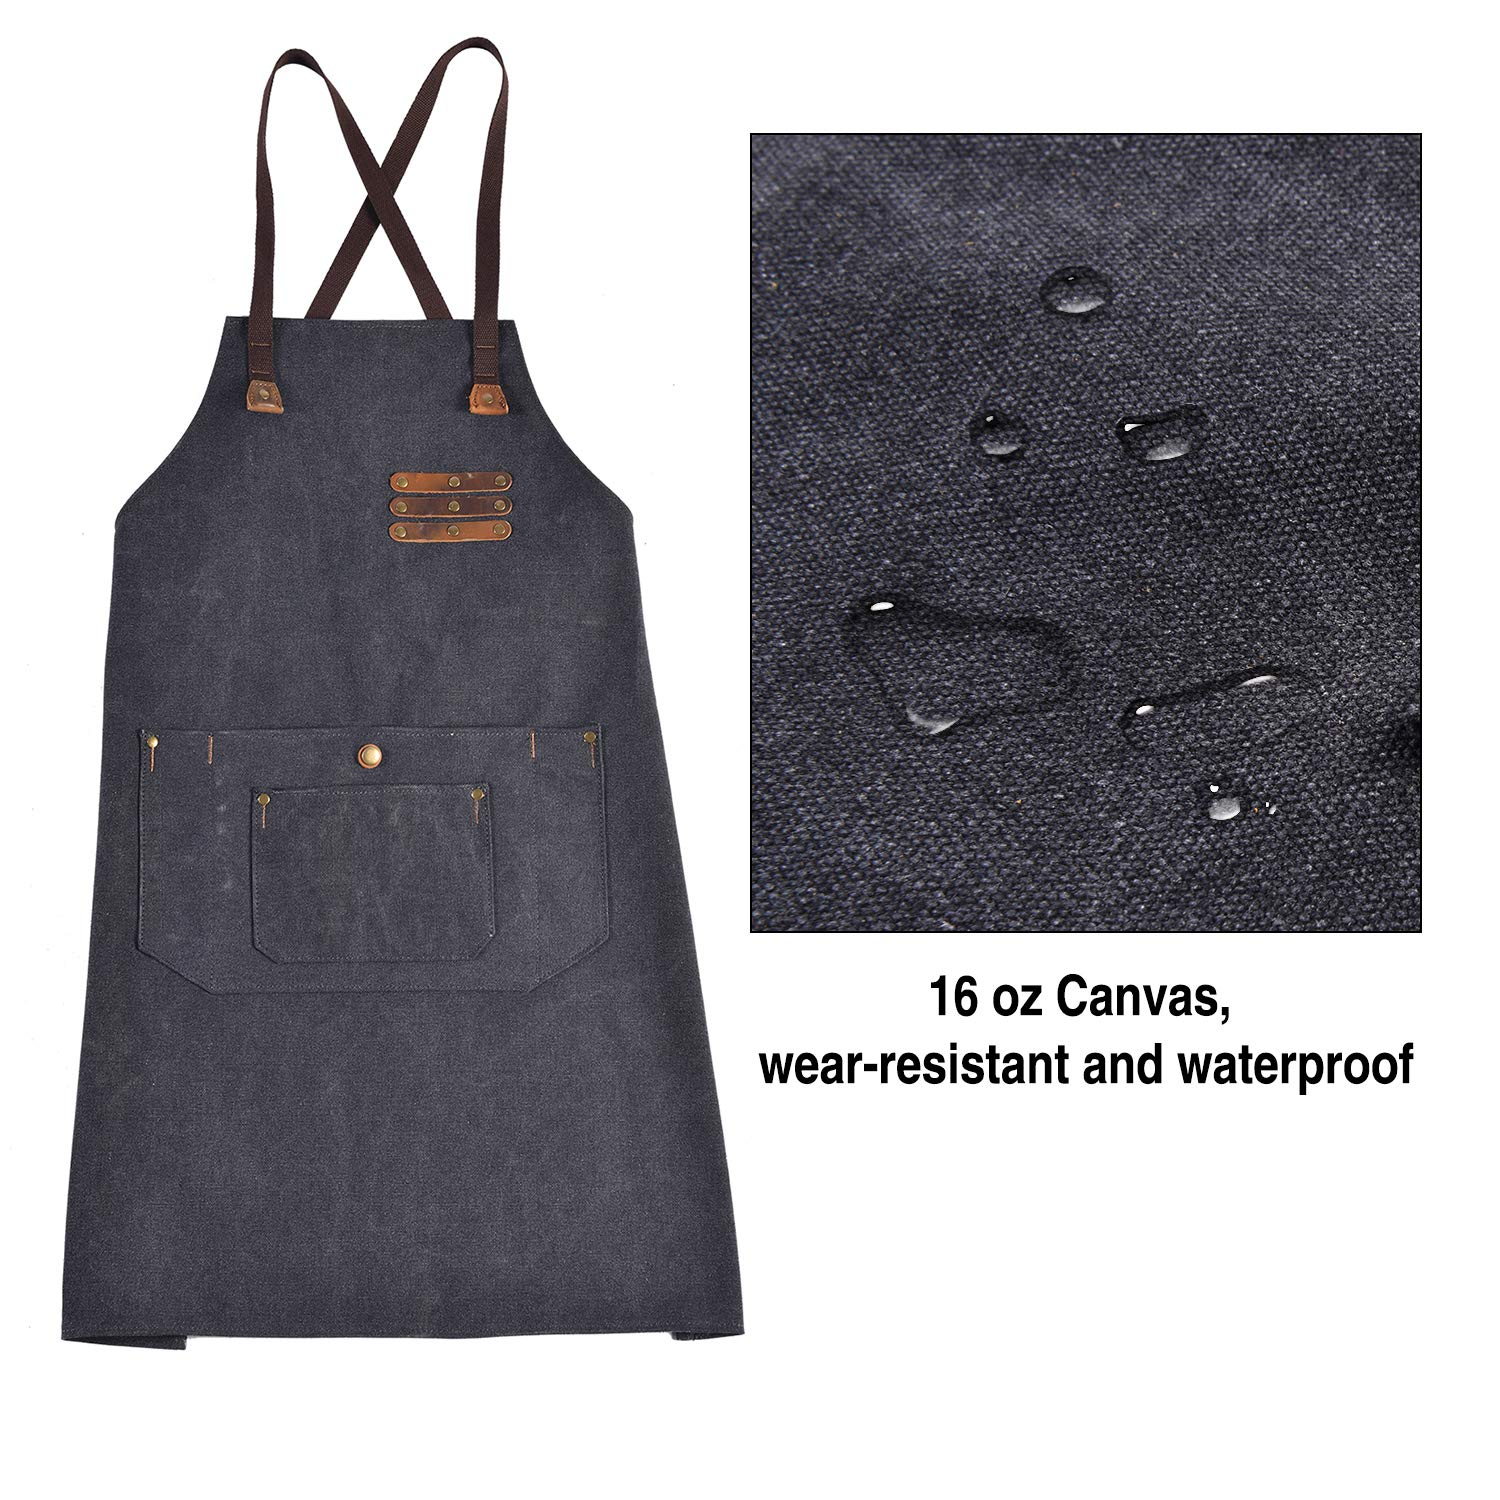 Canvas Shop Apron for Men & Women  Heavy Duty Work Apron with Pocket & Cross-Back Straps   Adjustable Tool Apron M to XXL(Grey) by ruizhixuan (Image #5)